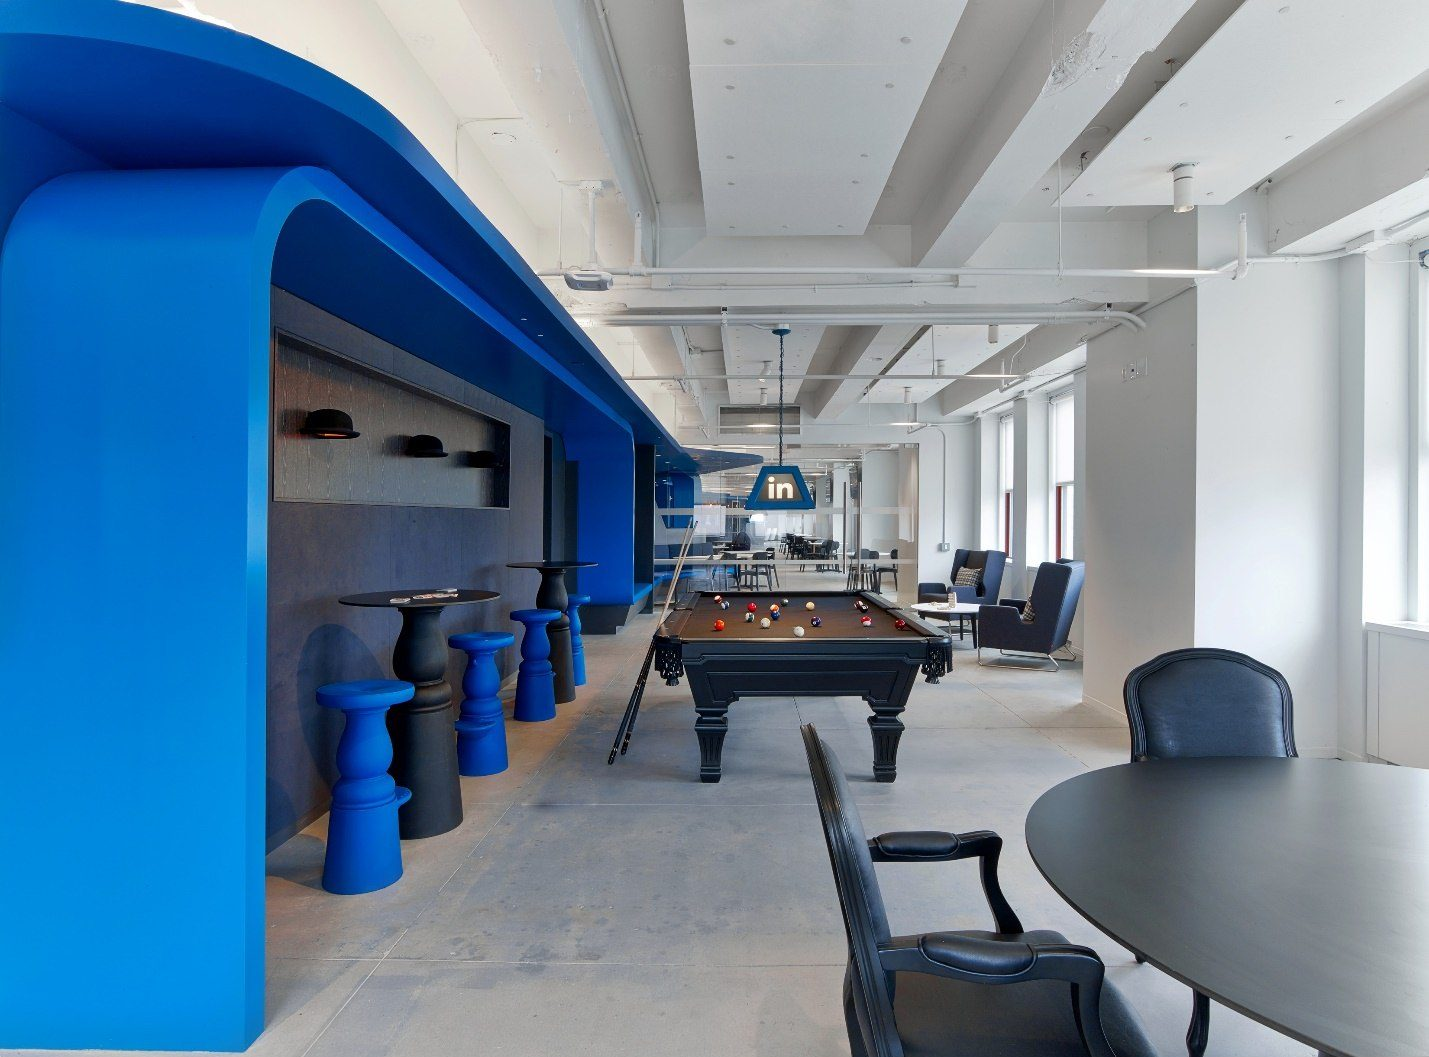 LinkedIn Recreation Room